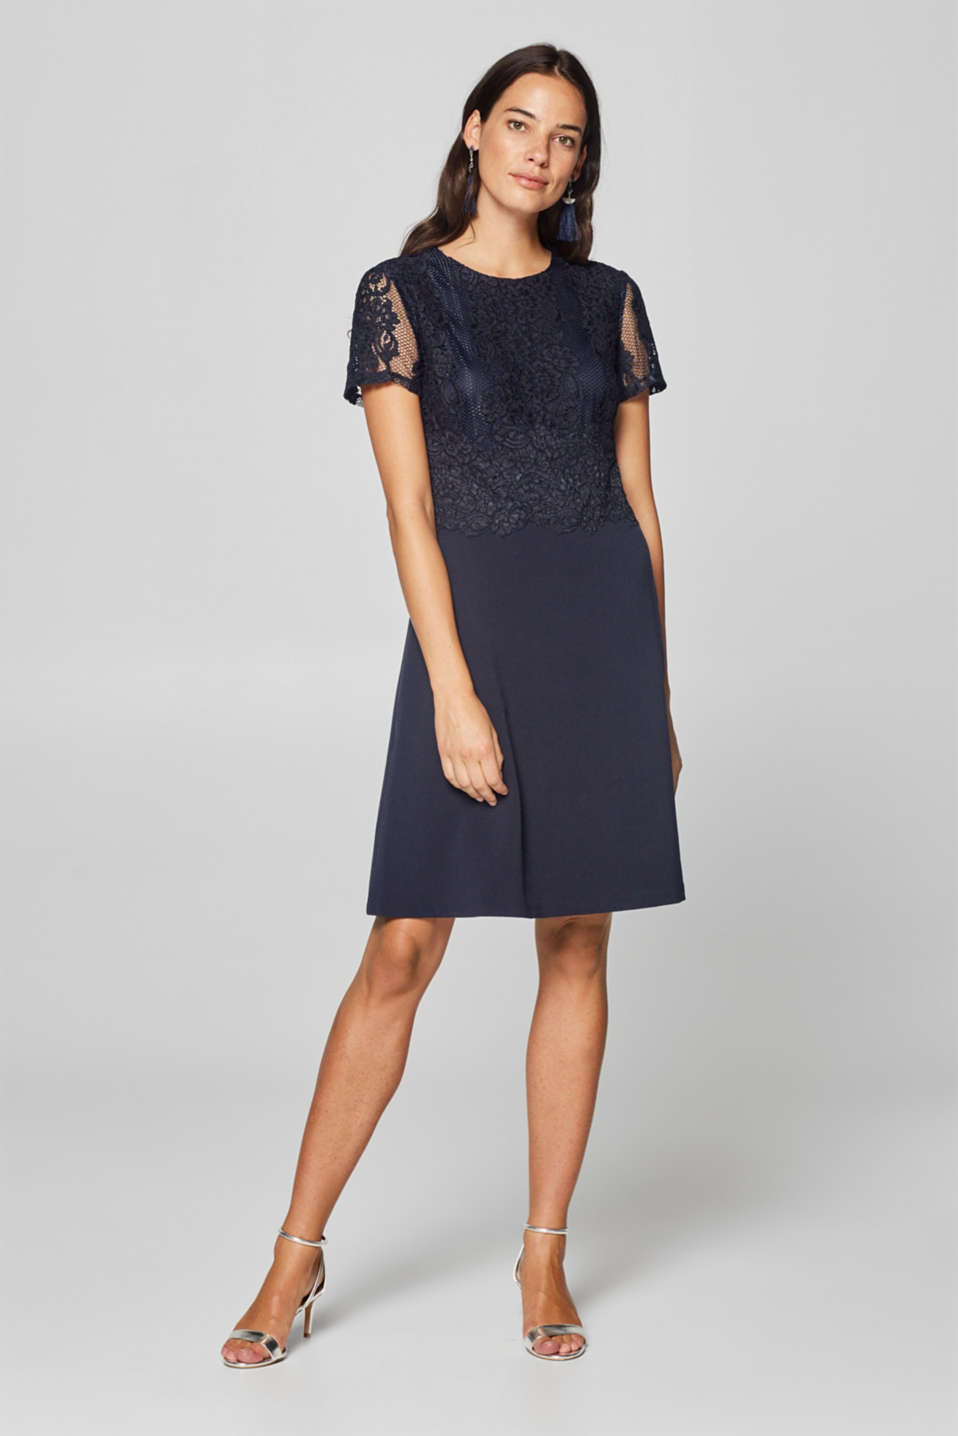 Esprit - Dress in a fabric blend of lace and jersey